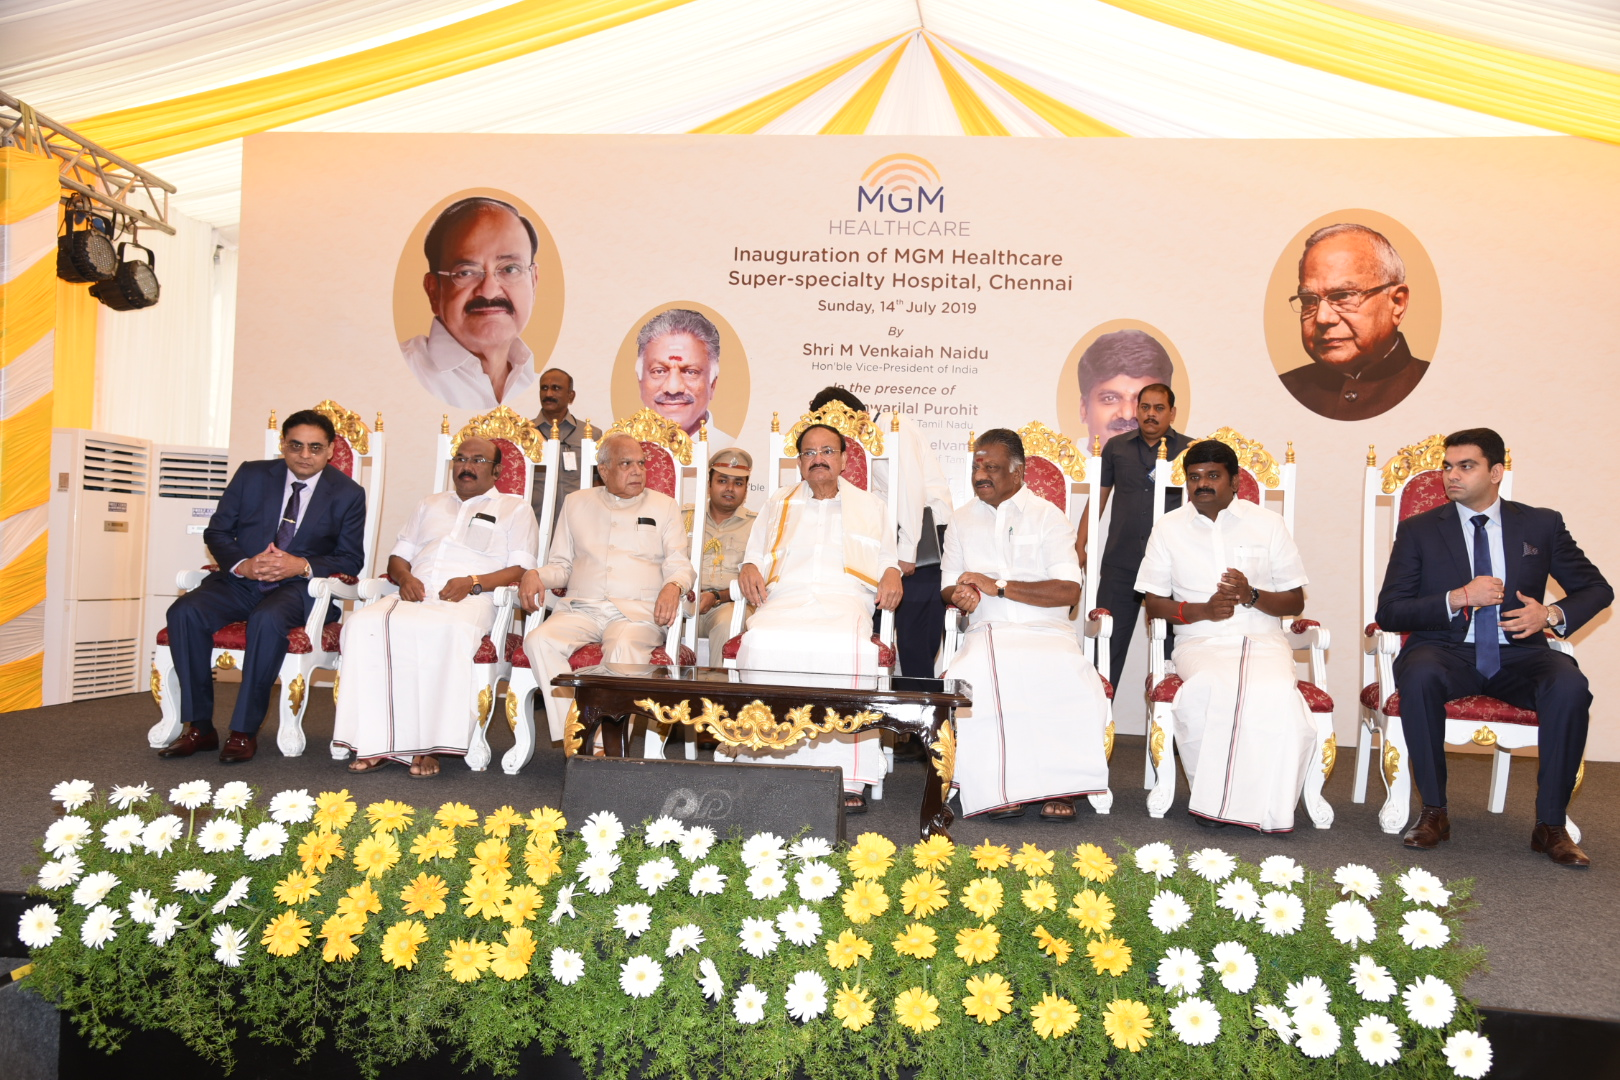 The Vice President, Shri M. Venkaiah Naidu at an event to inaugurate MGM Healthcare Super Specialty Hospital, in Chennai on July 14, 2019. The Governor of Tamil Nadu, Shri Banwarilal Purohit, the Deputy Chief Minister of Tamil Nadu, Shri O. Panneerselvam, the Minister for Health and Family Welfare, Government of Tamil Nadu, Dr. C. Vijaya Baskar, the Minister for Fisheries, Shri D. Jayakumar and other dignitaries are also seen.